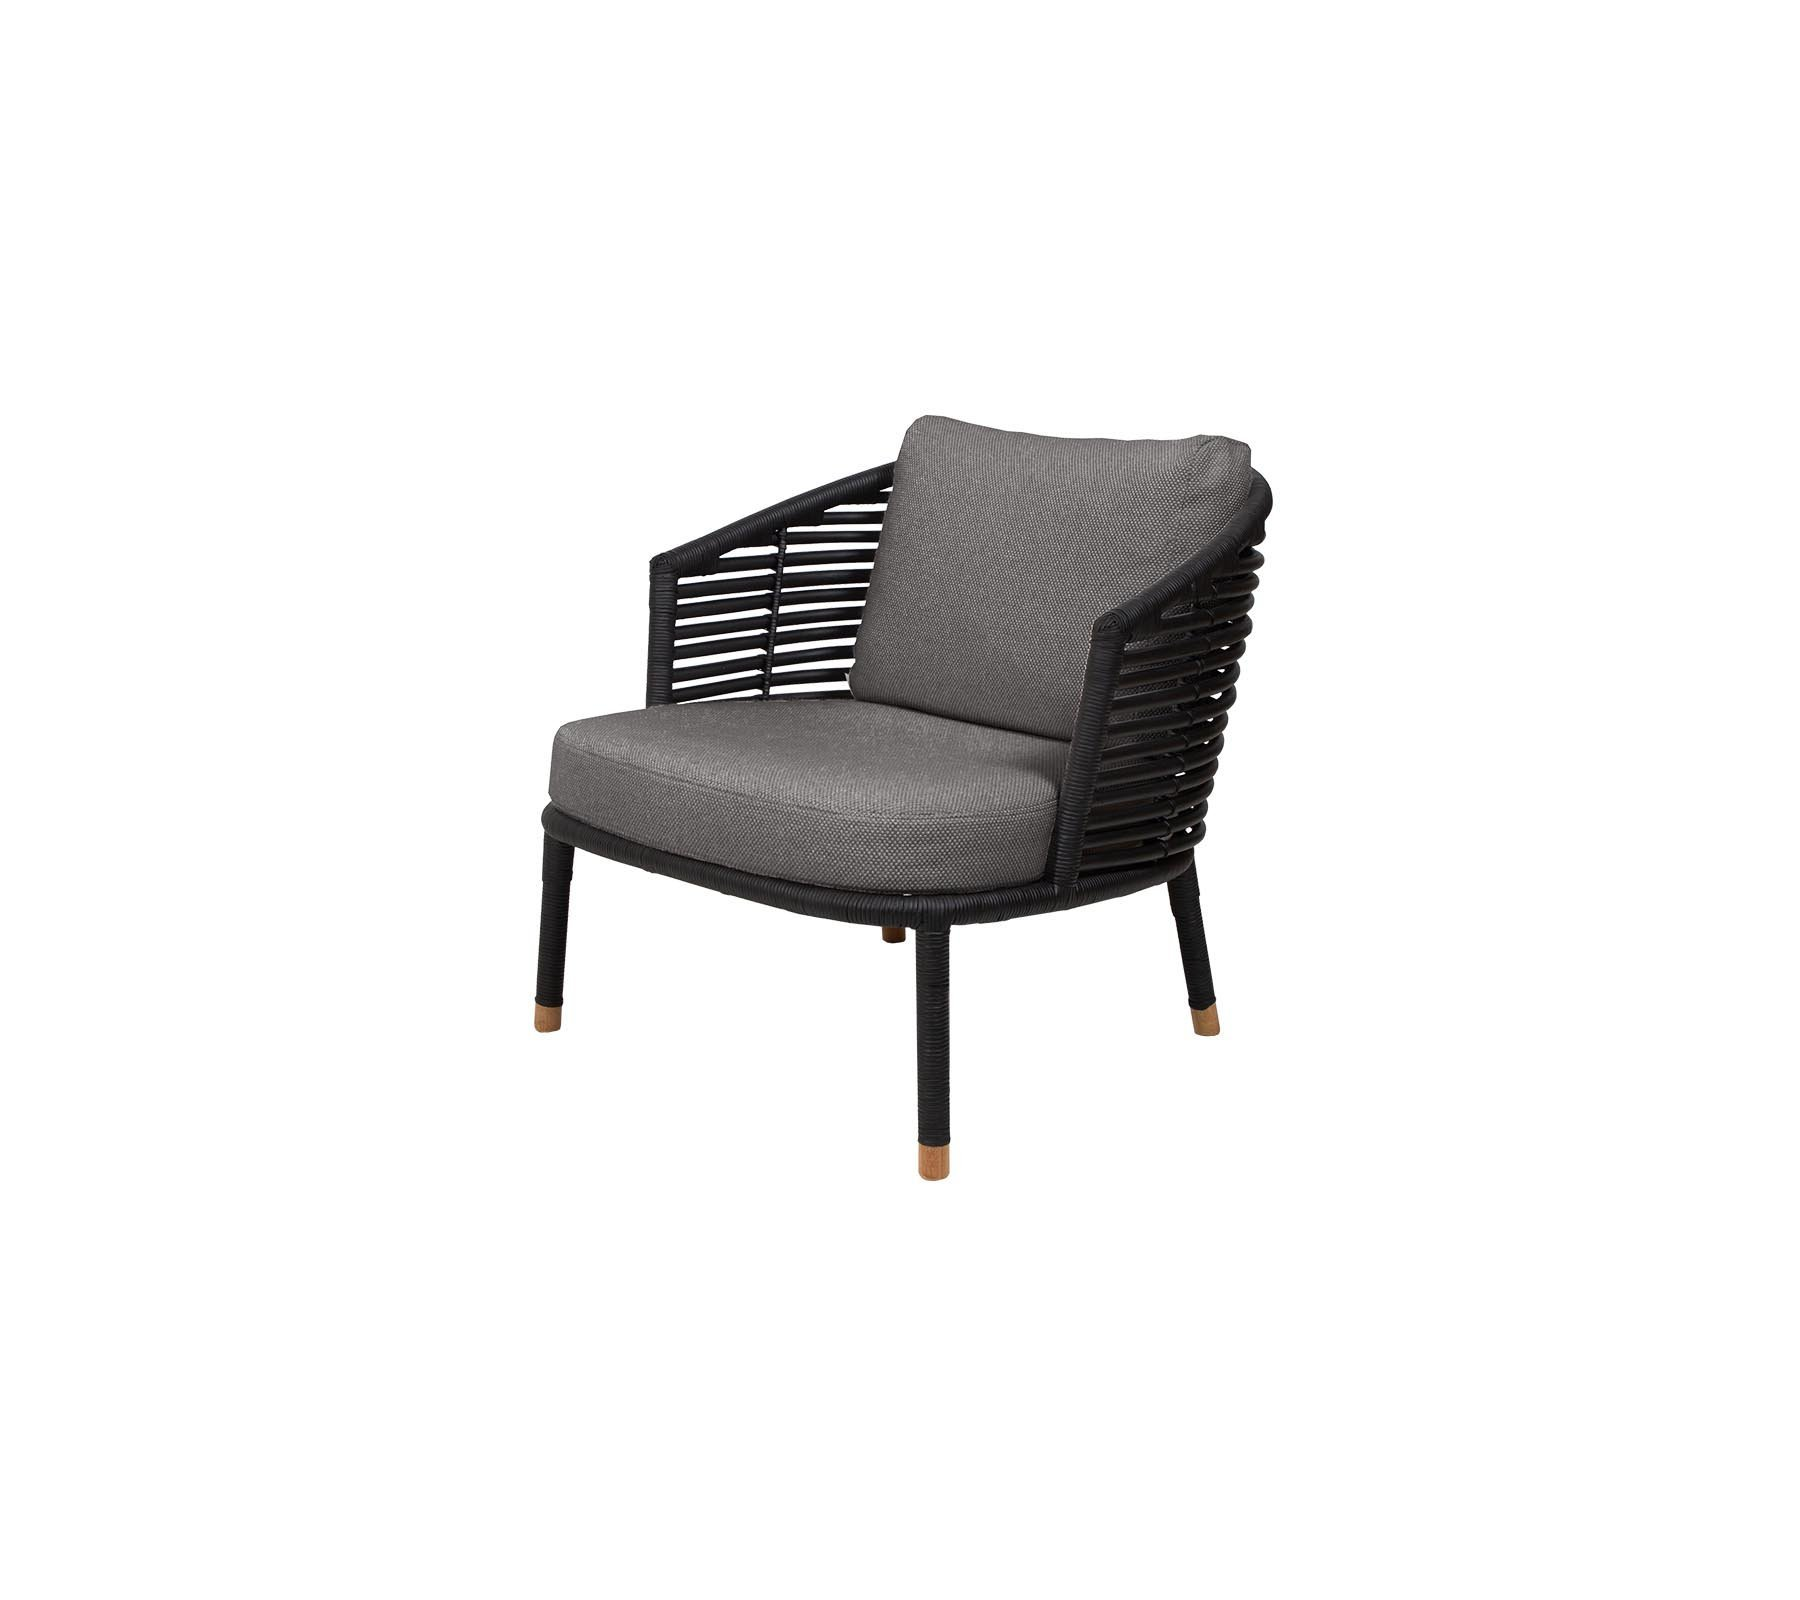 Sense Lounge Chair from Cane-line, designed by Foersom & Hiort-Lorenzen MDD